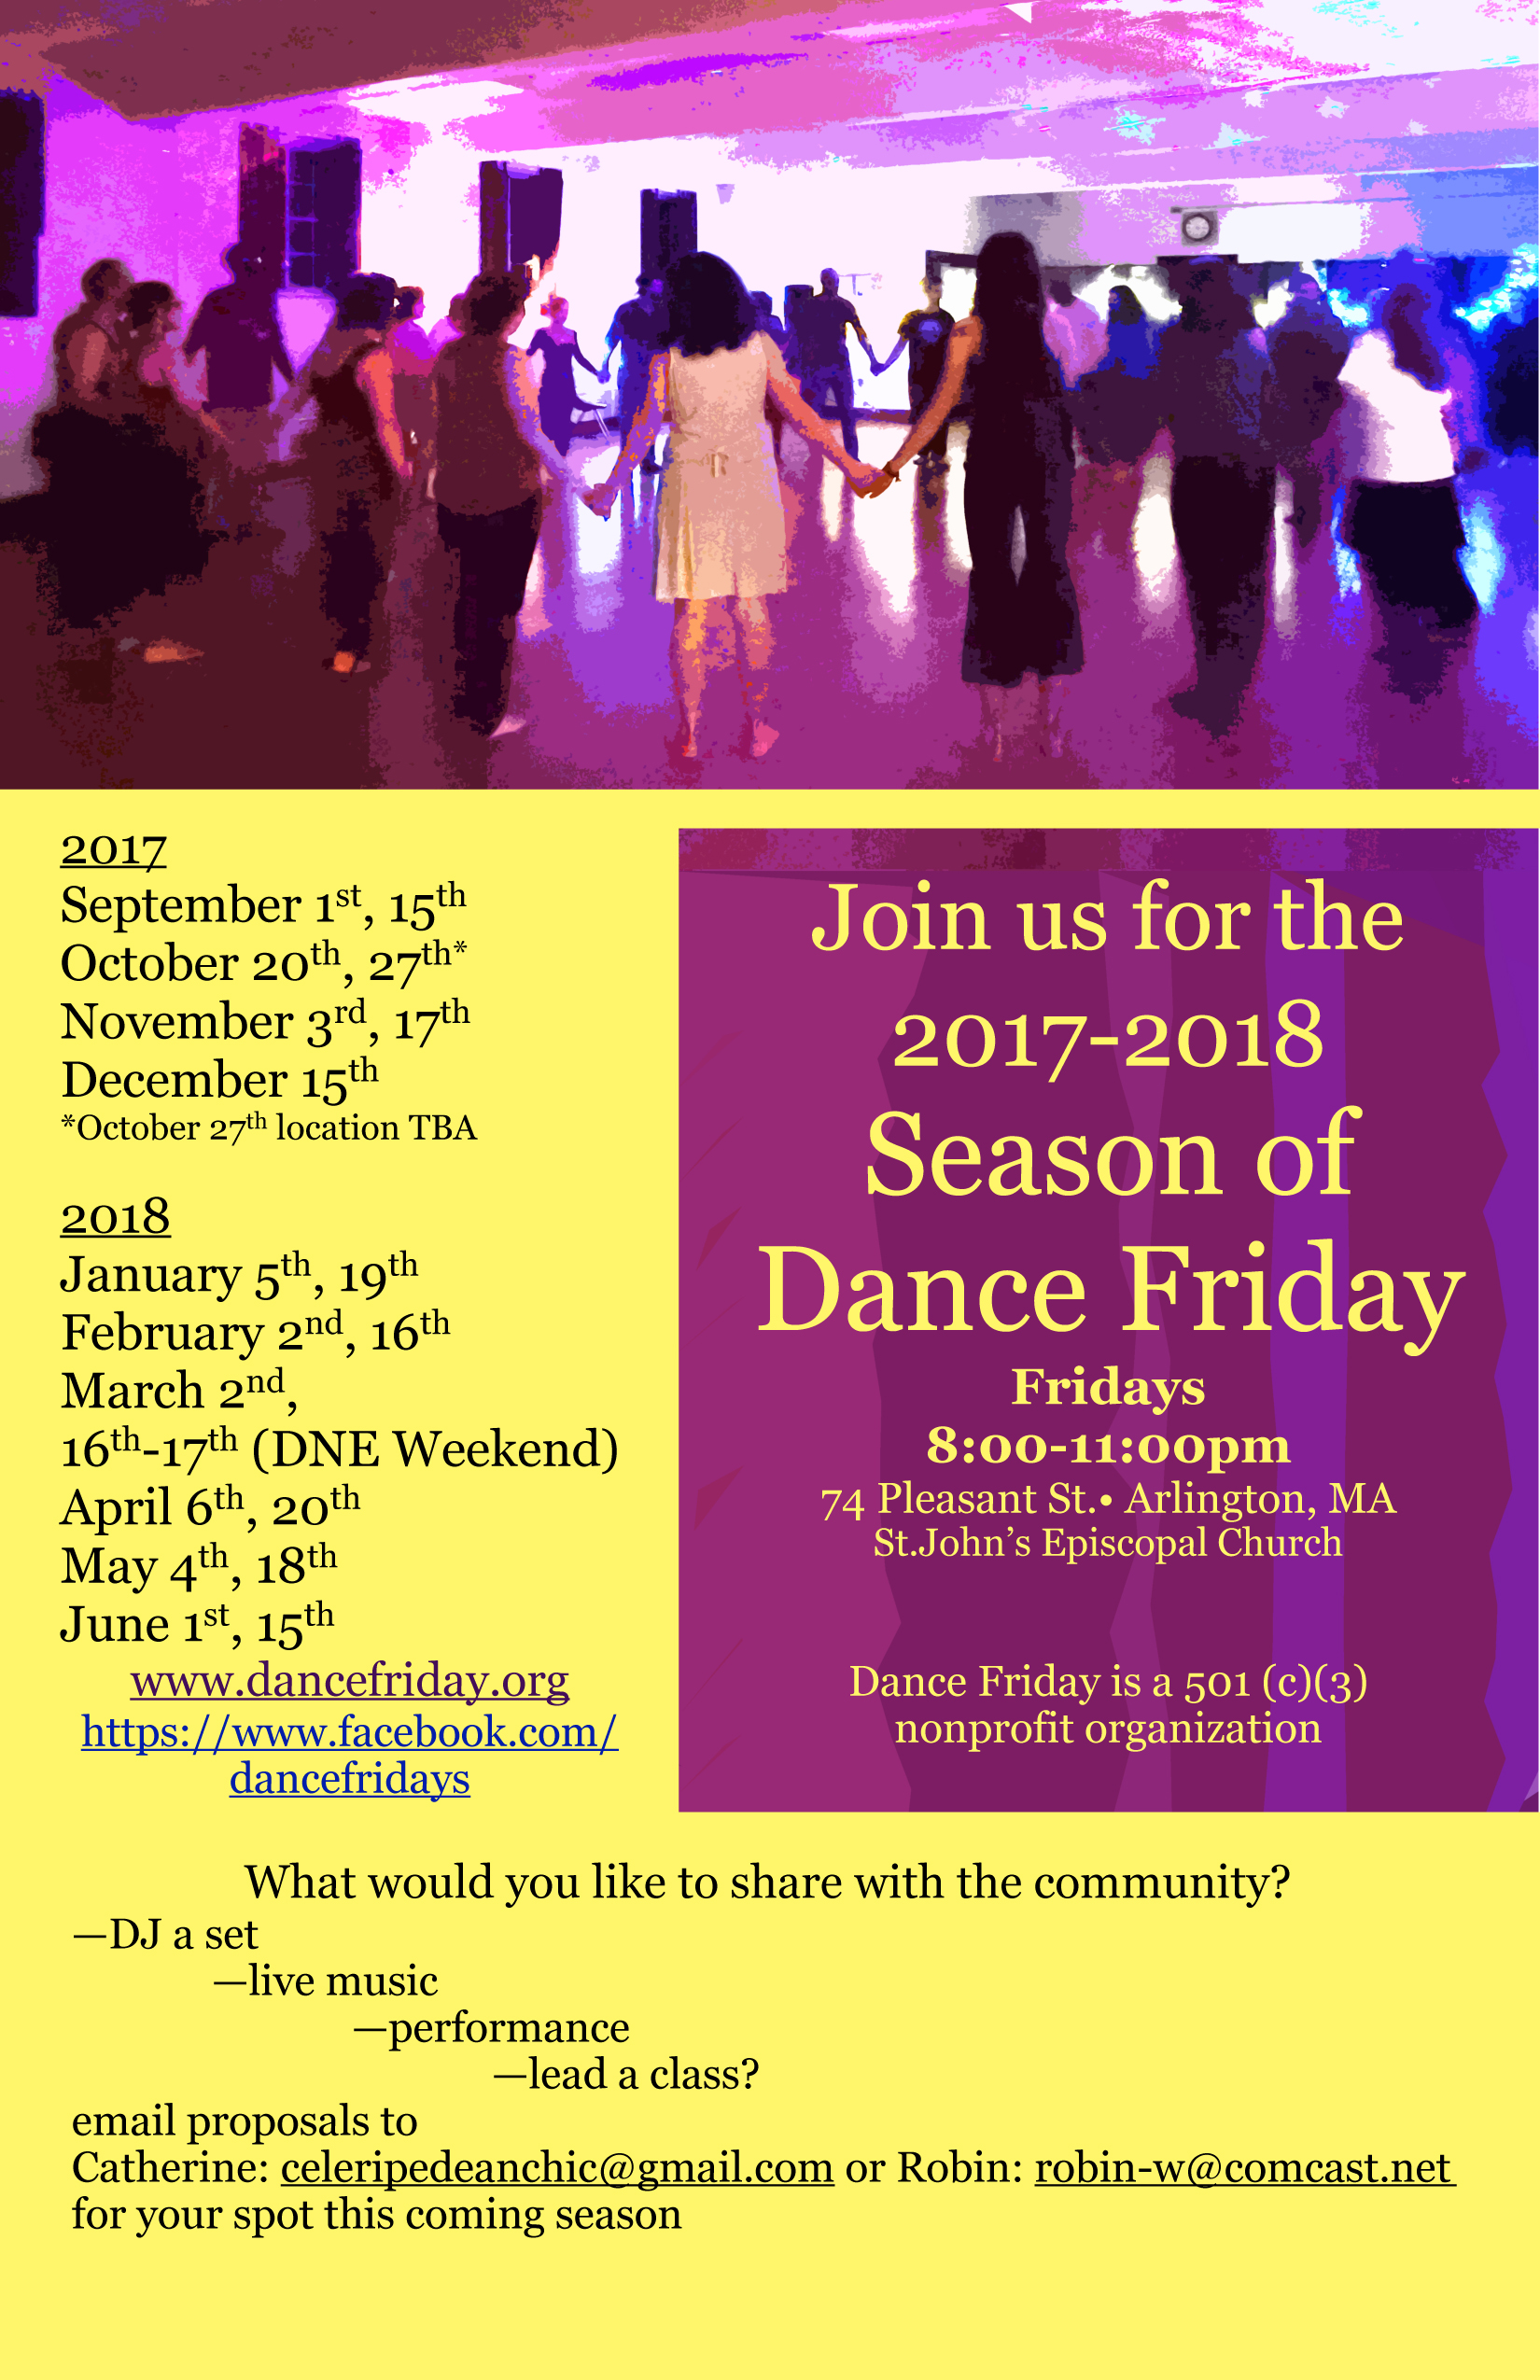 No dance this week—see schedule below and join us for our next event.